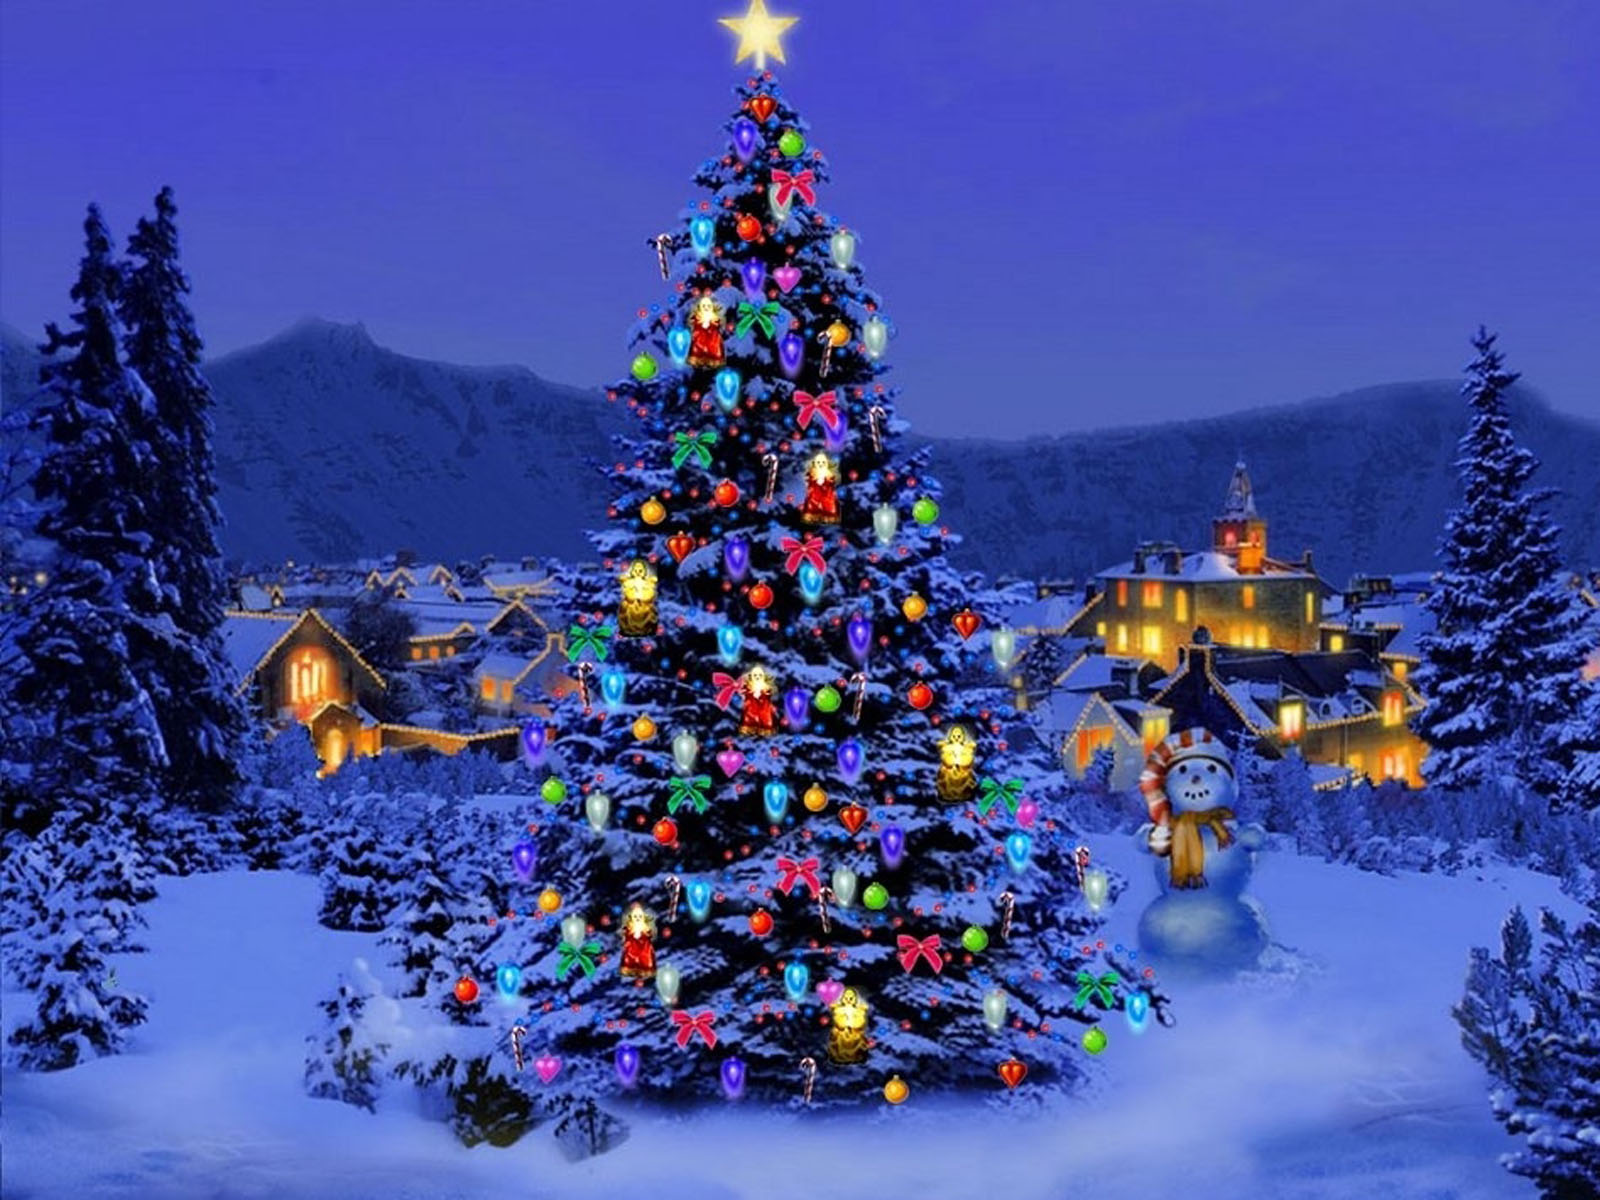 Wallpapers: Christmas Trees Wallpapers